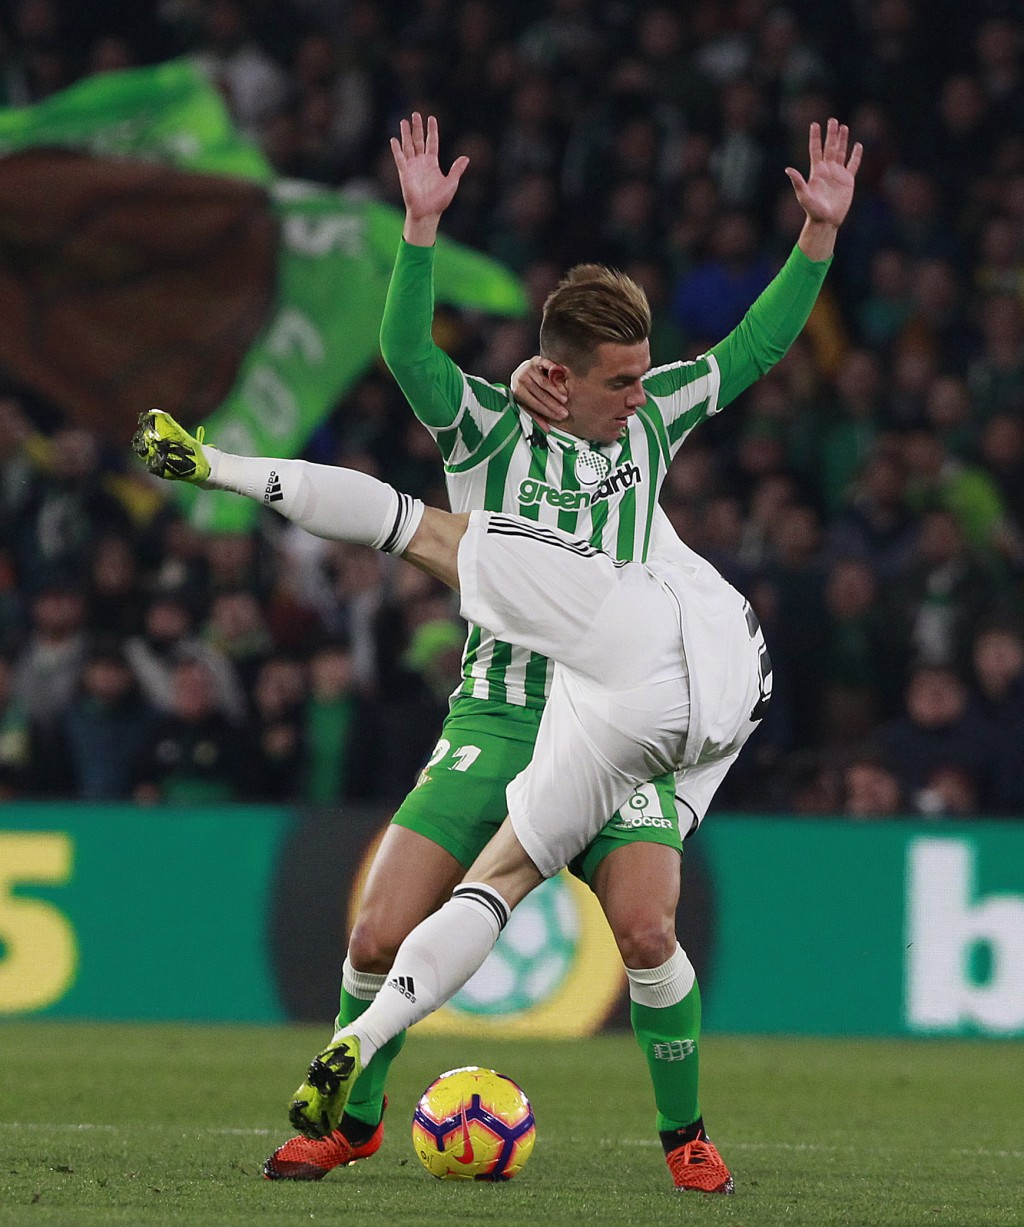 Real Madrid's Modric, front, and Betis' Lo Celso battle for the ball during La Liga soccer match between Betis and Real Madrid at the Villamarin stadi